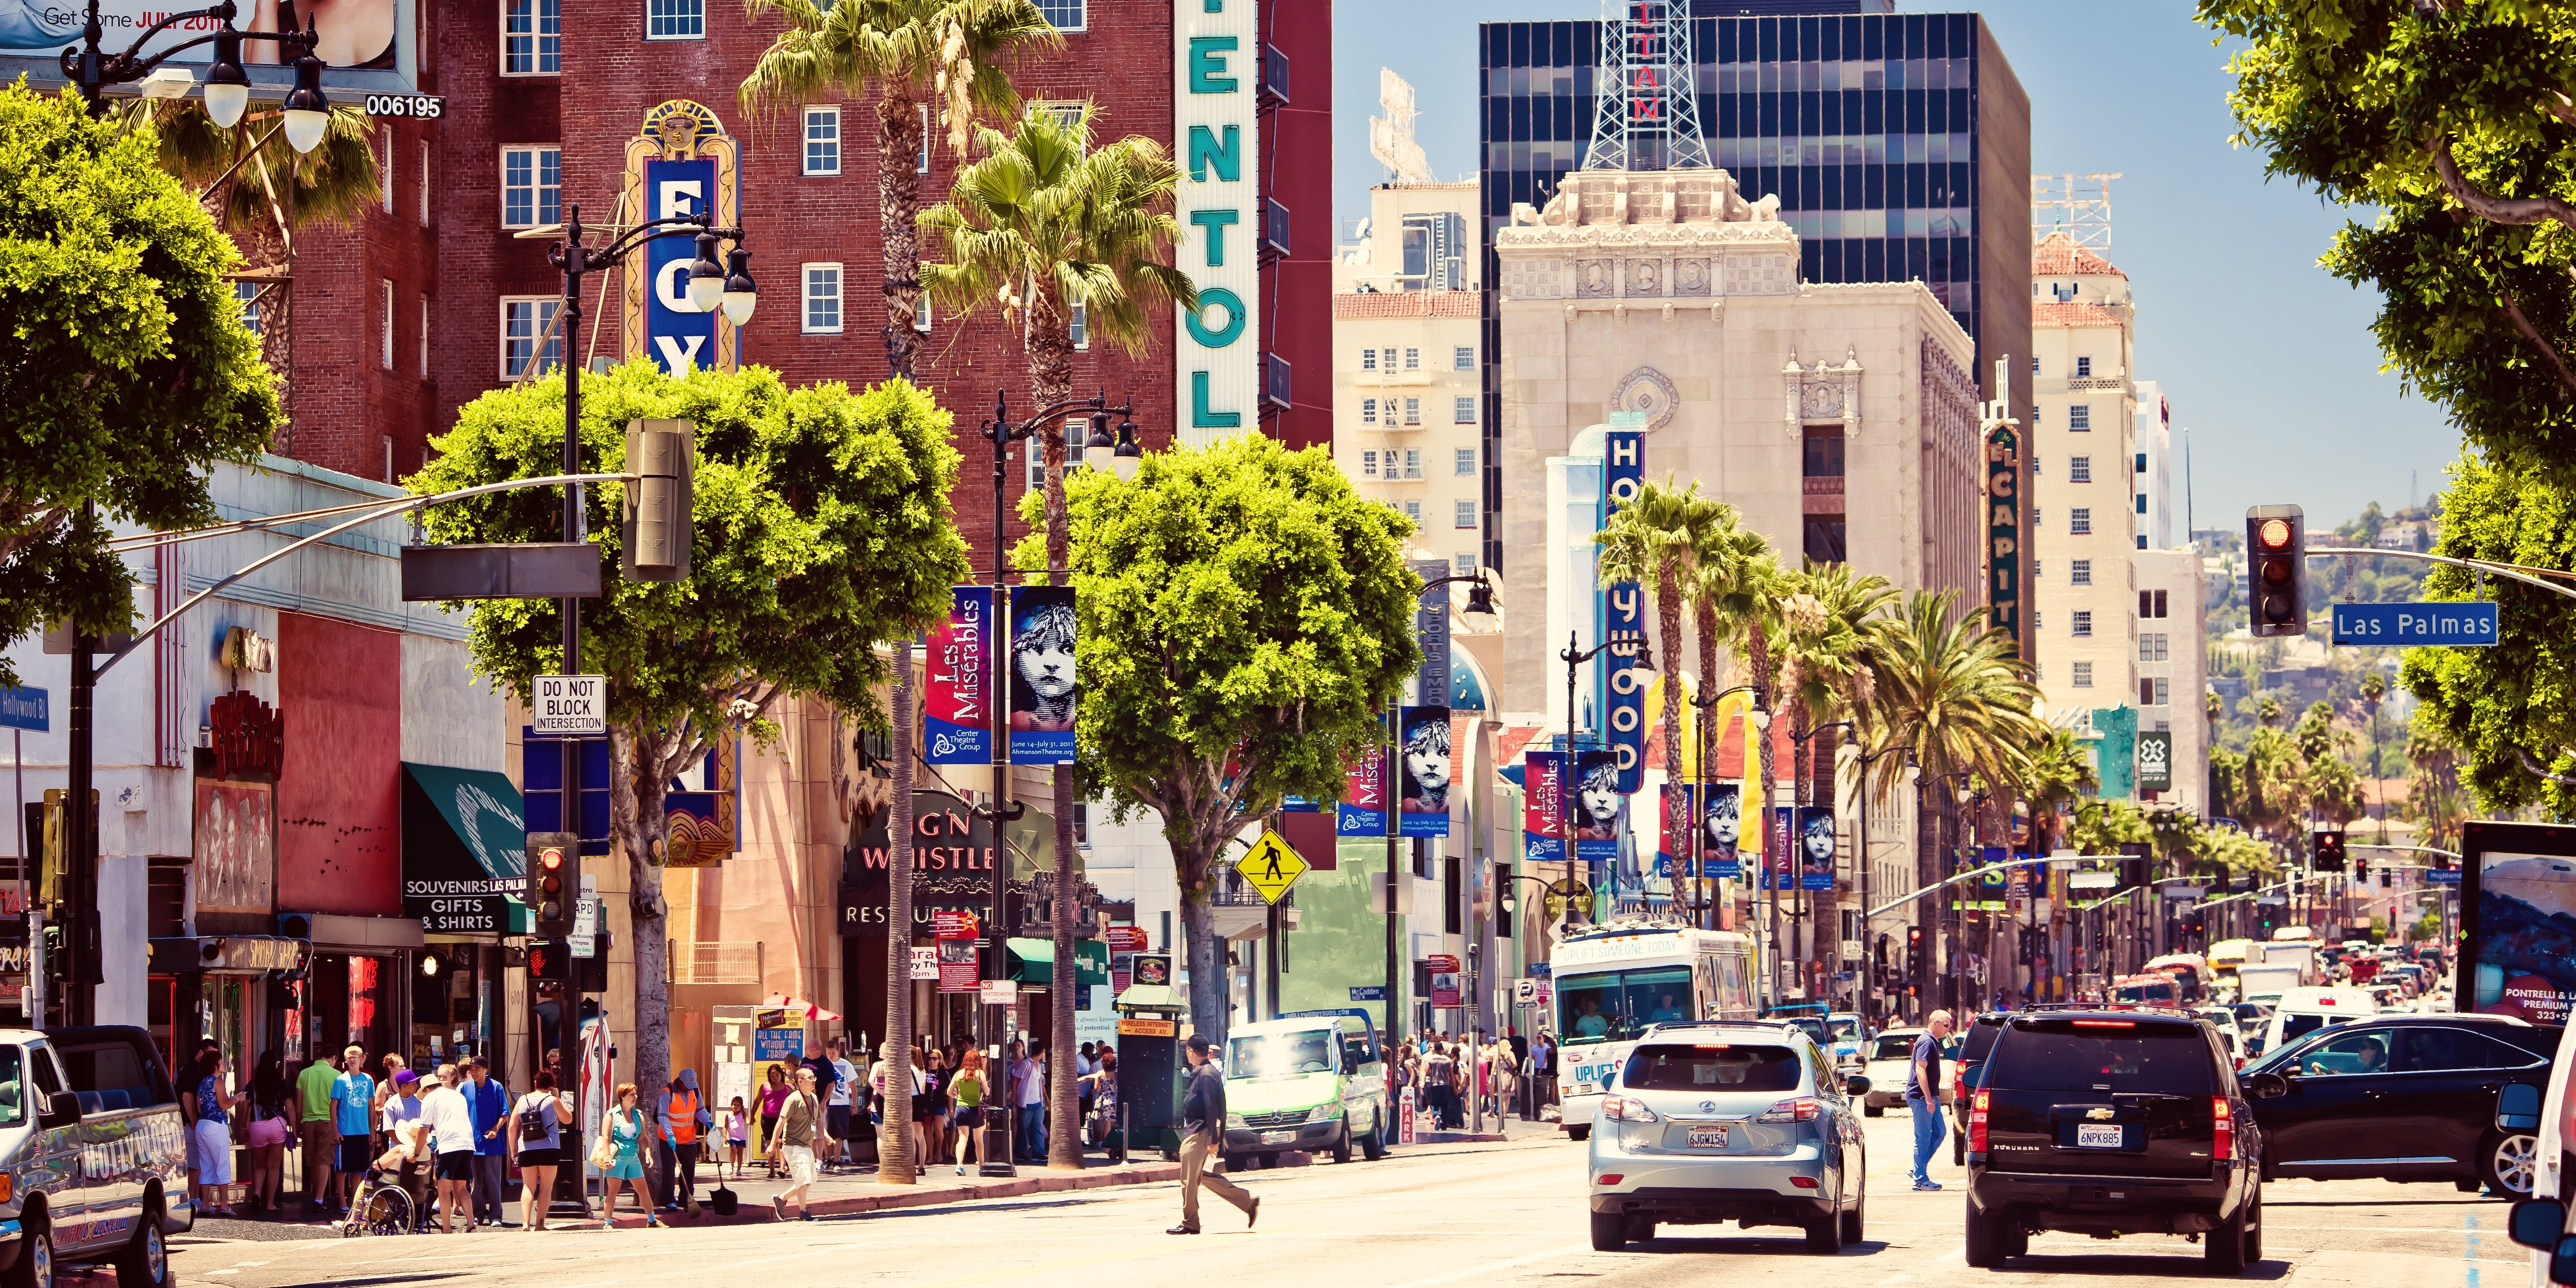 10 Ways To Have The Best 24 Hours In Los Angeles